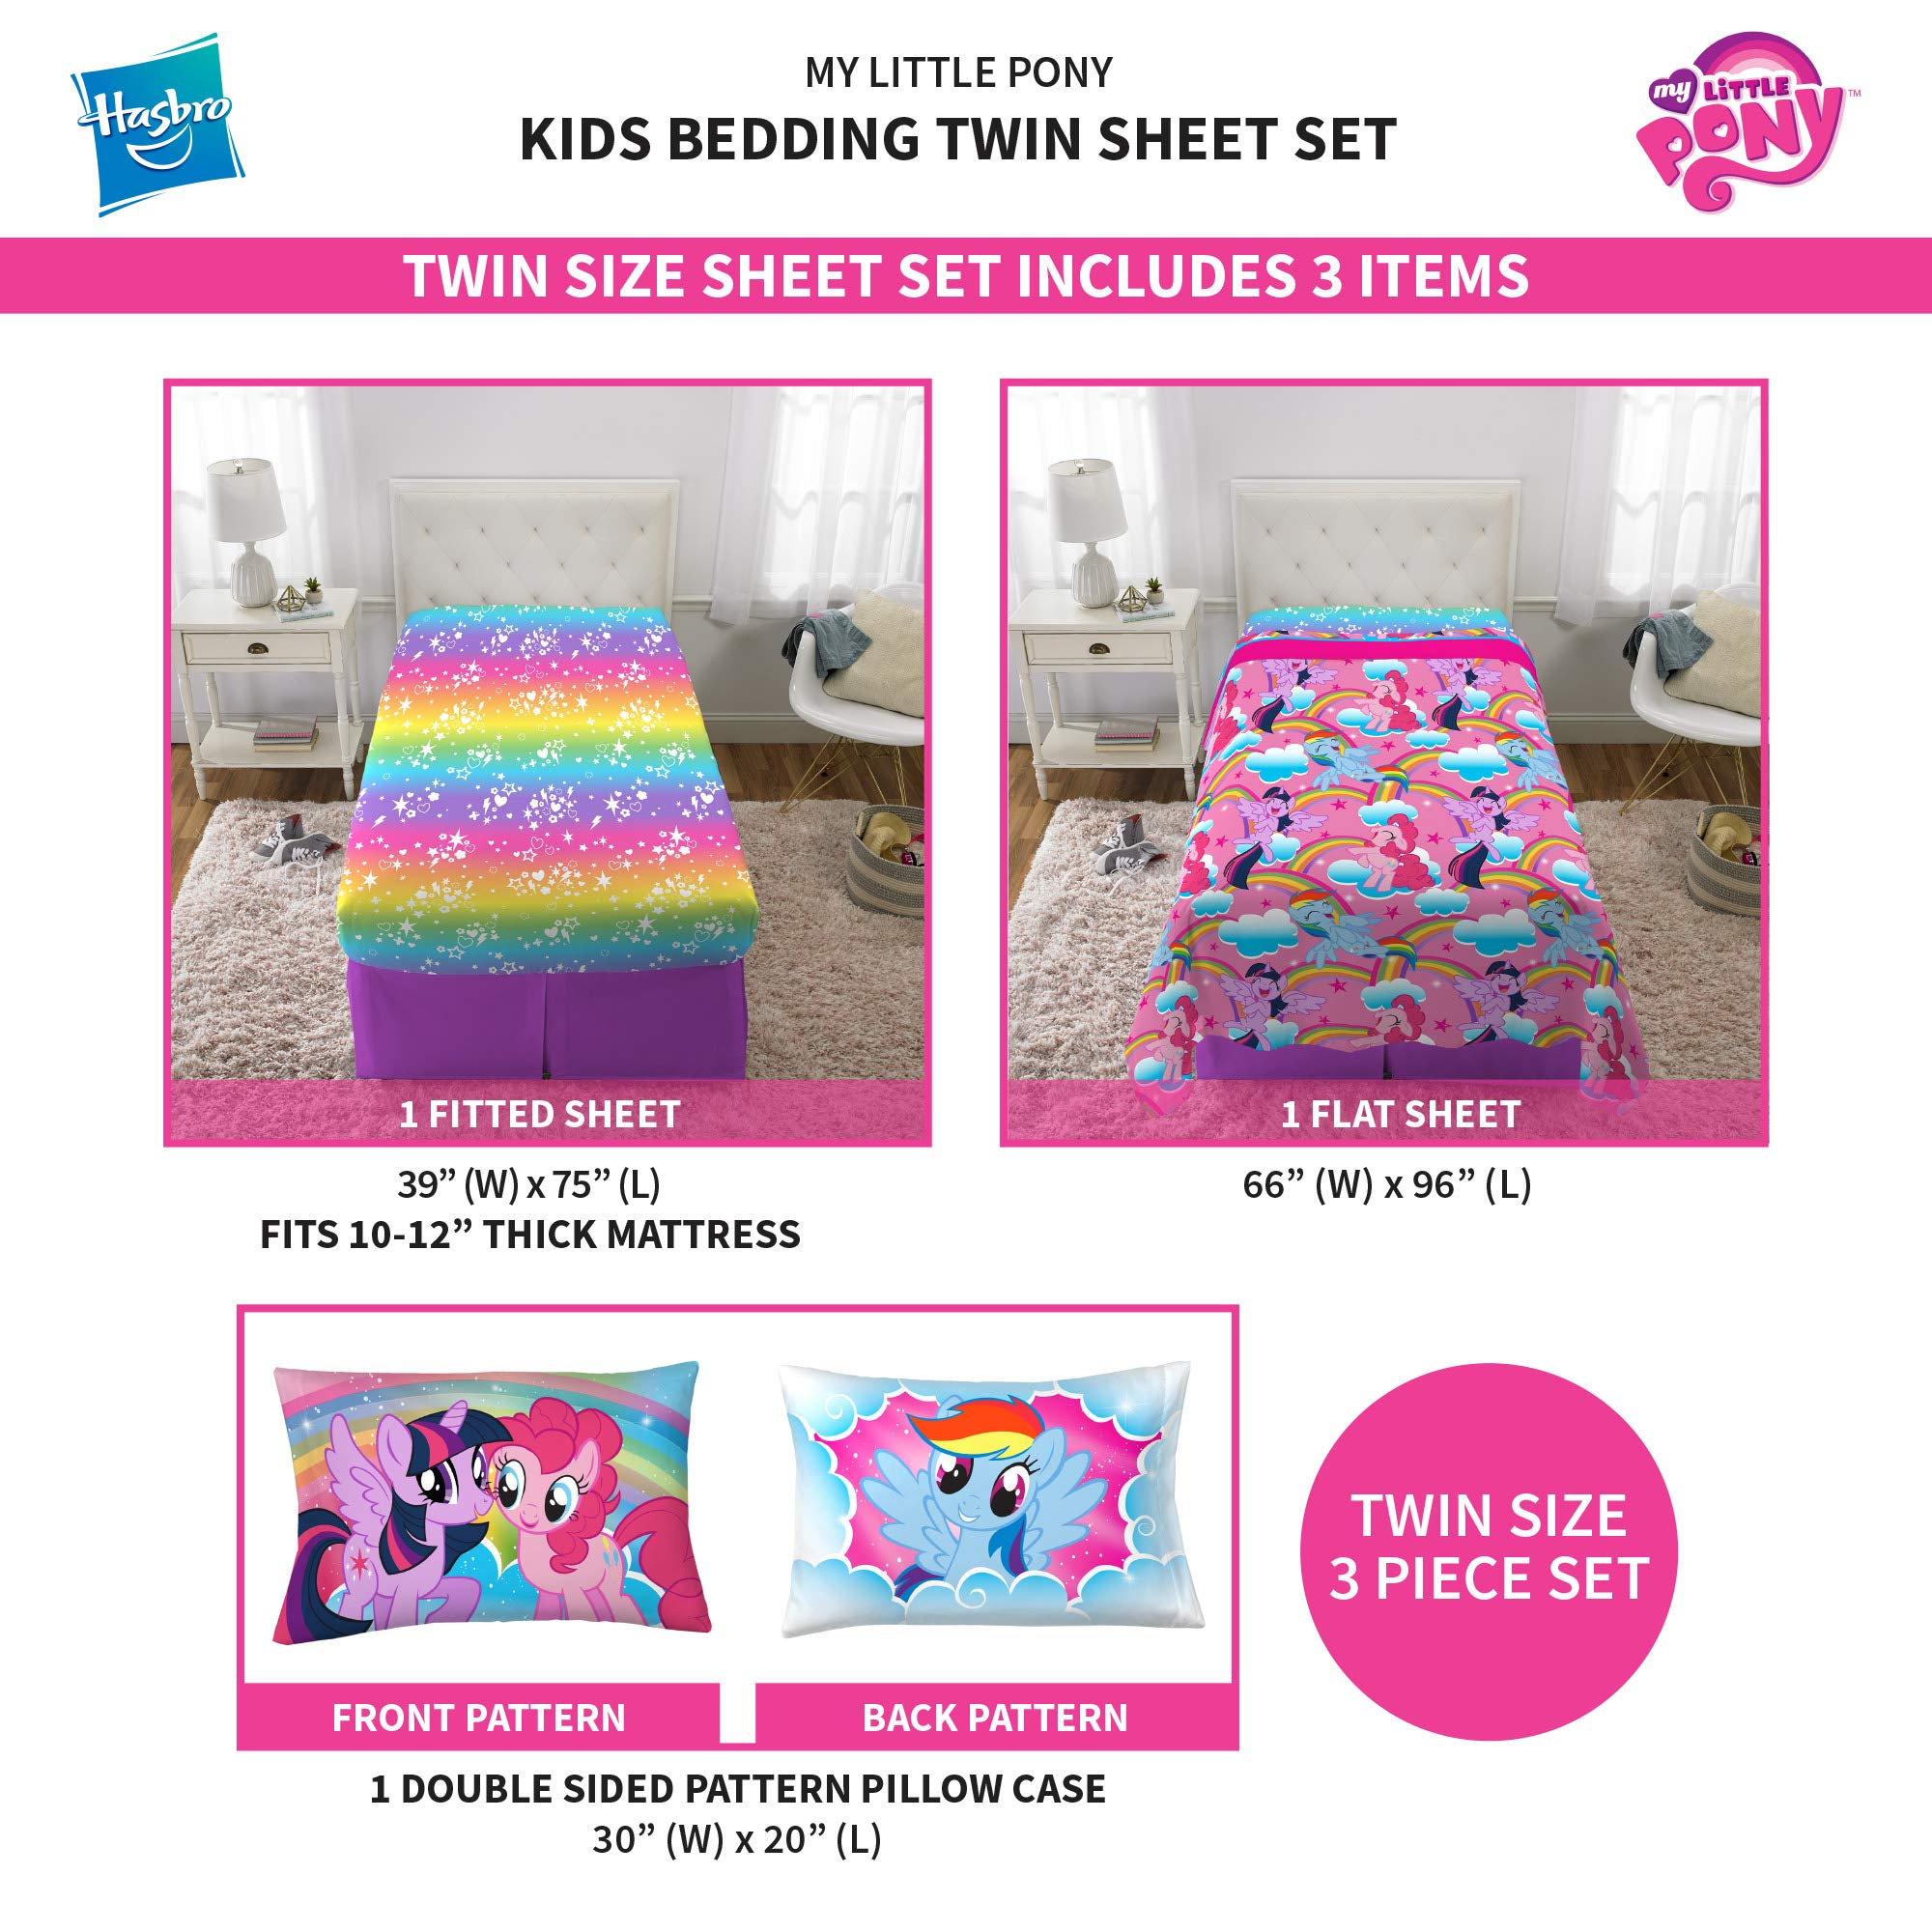 Franco Kids Bedding Super Soft Microfiber Sheet Set, 3 Piece Twin Size, Hasbro My Little Pony by Franco (Image #4)